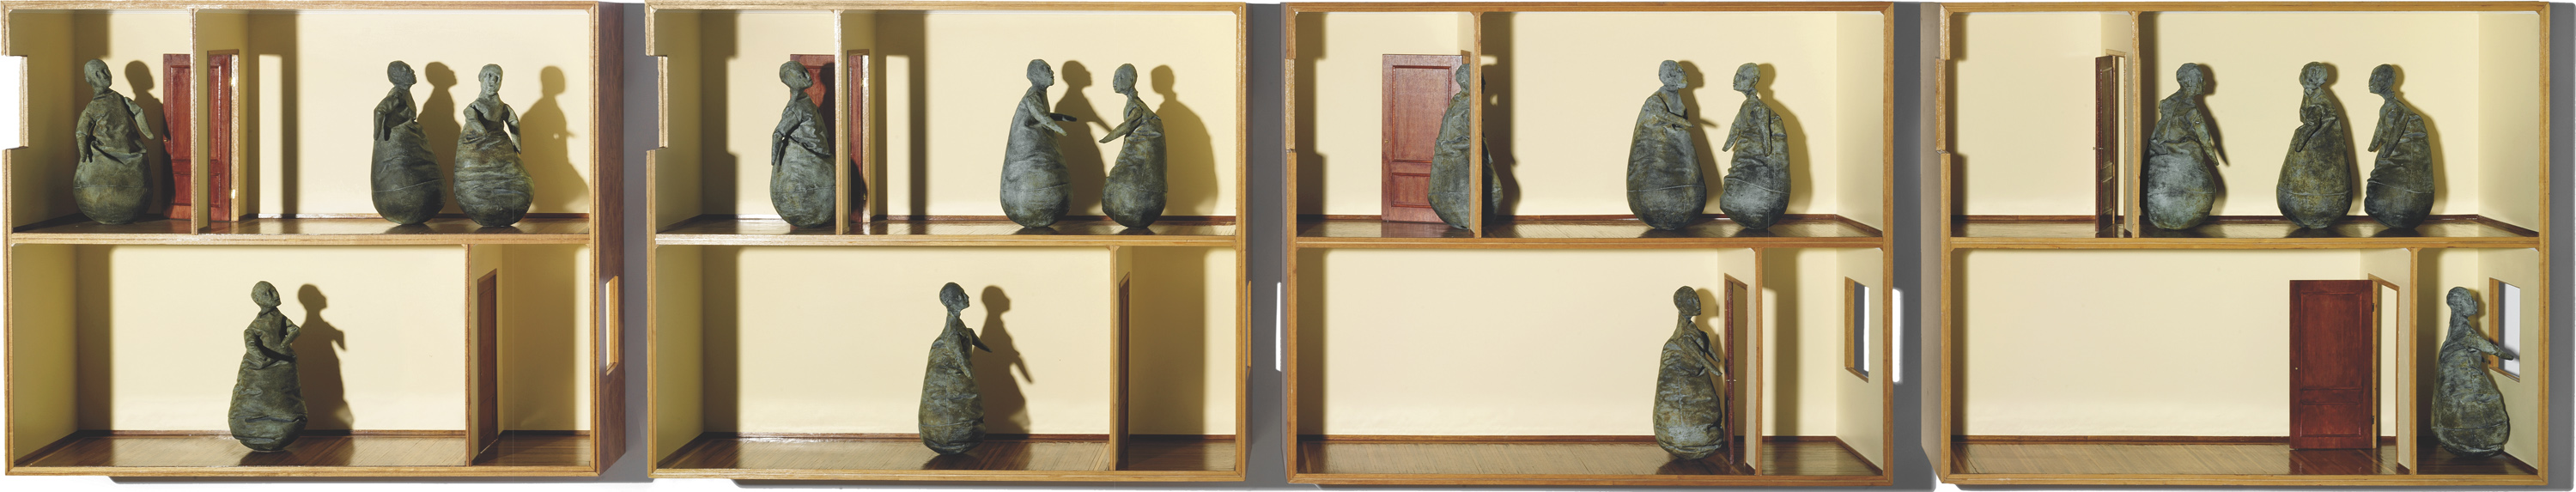 Two Floors, Four Figures